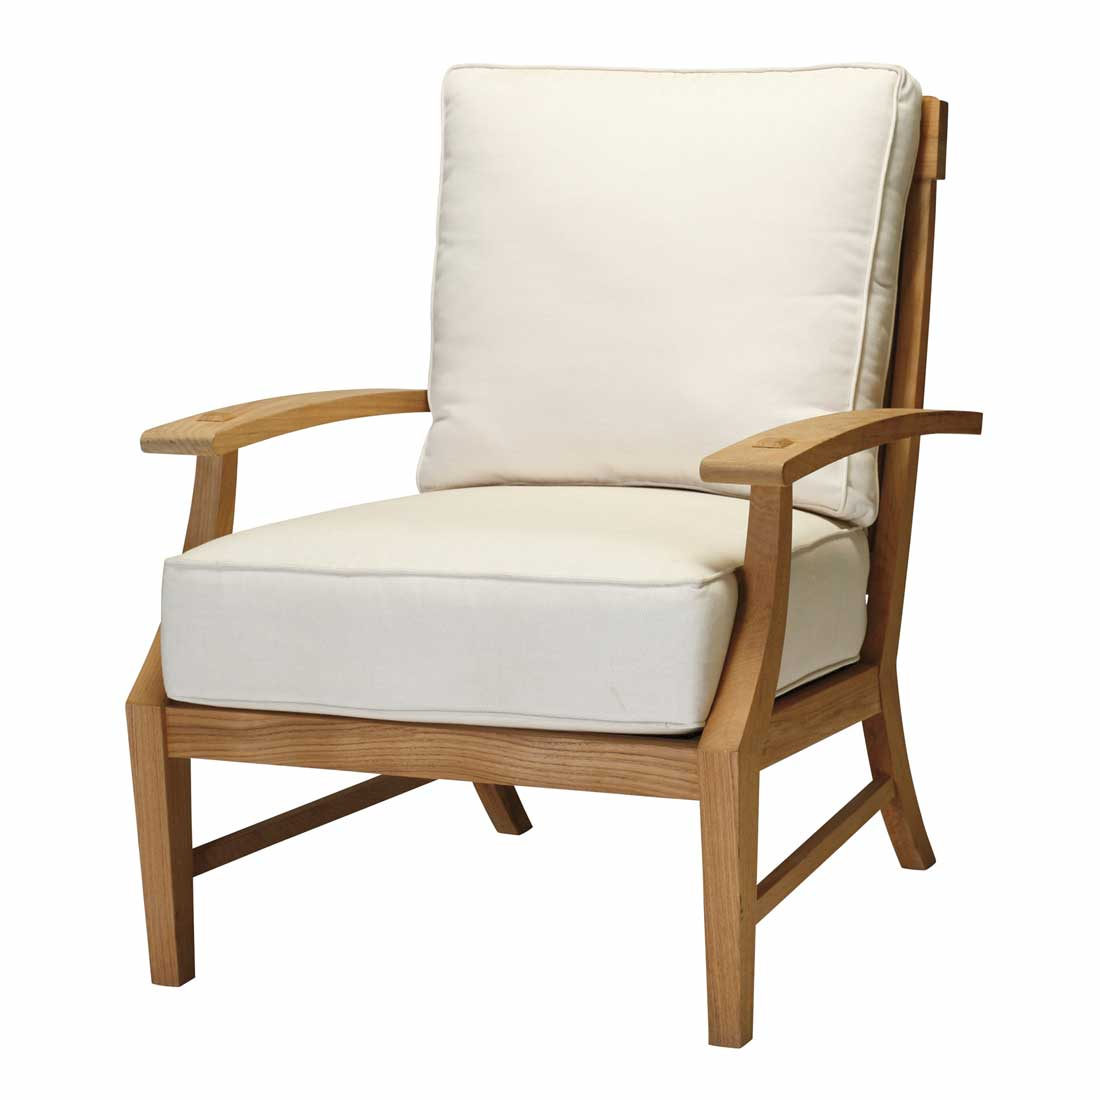 Teak outdoor lounge chairs - Croquet Teak Lounge Chair